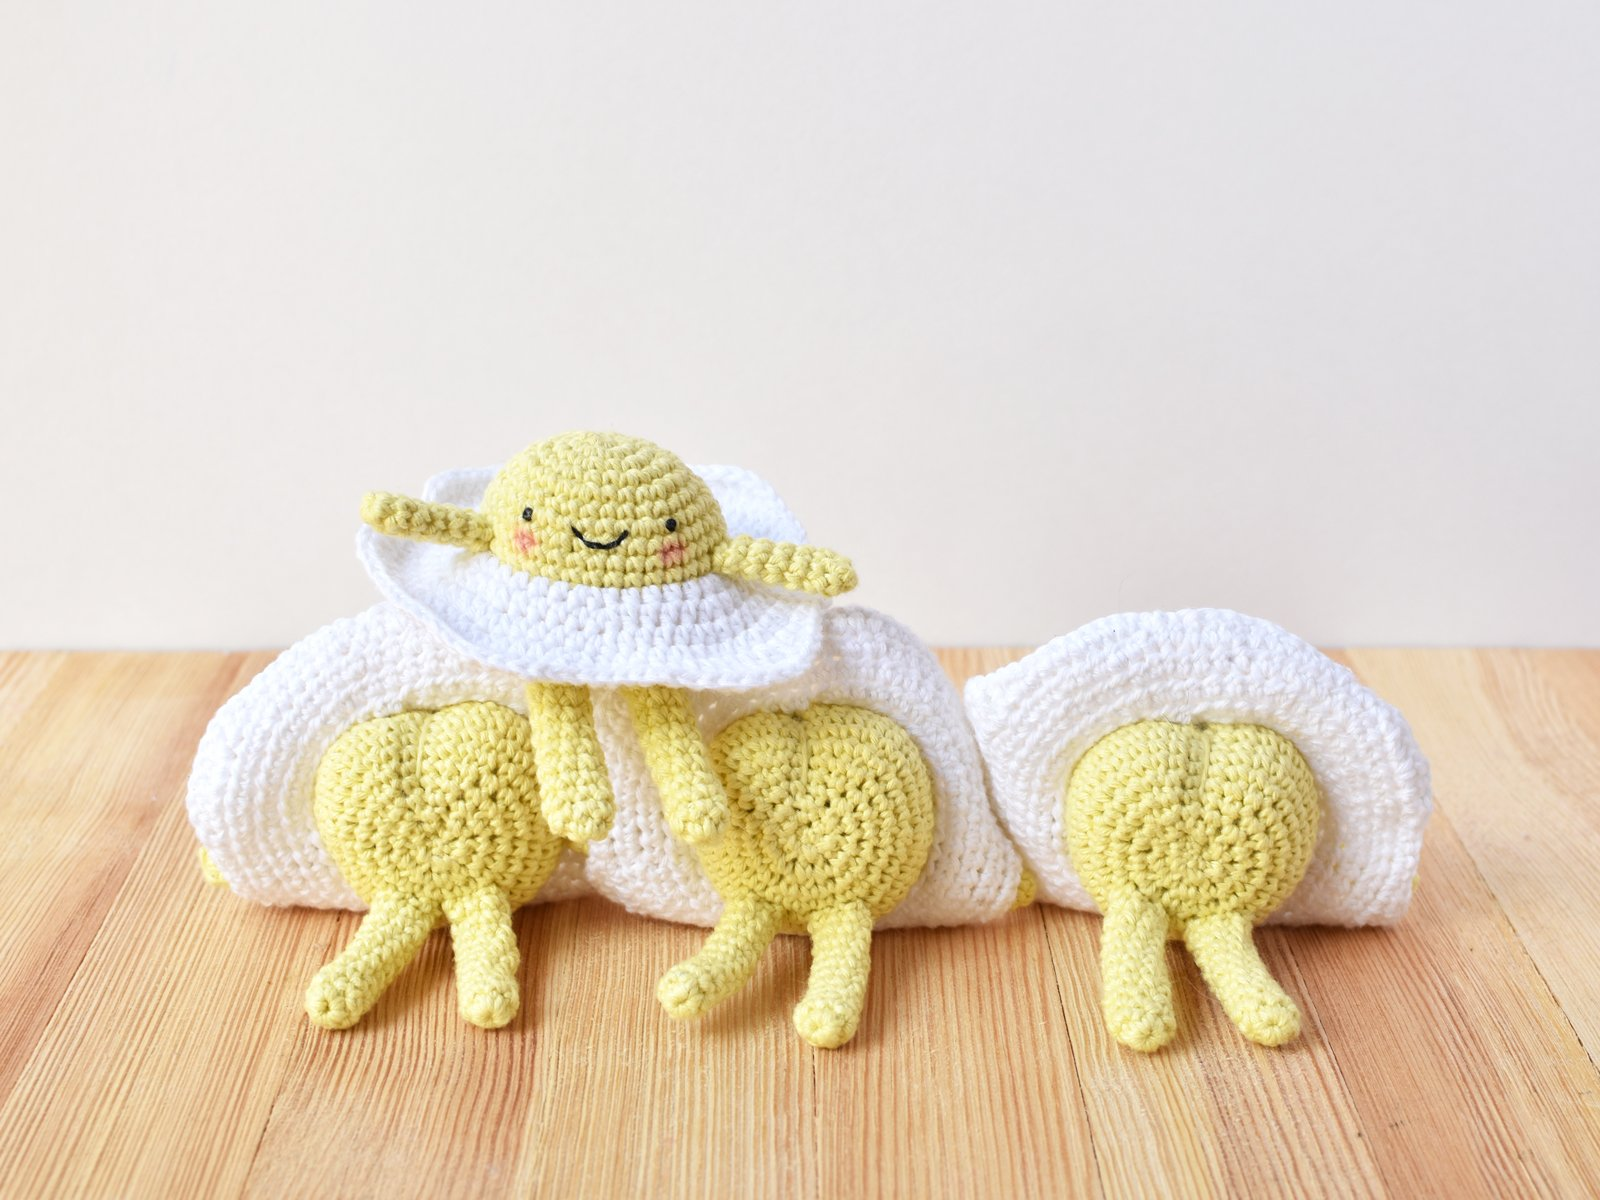 Crochet egg with arms and legs sitting on top of 3 other fried egg crochet dolls with their butts up.